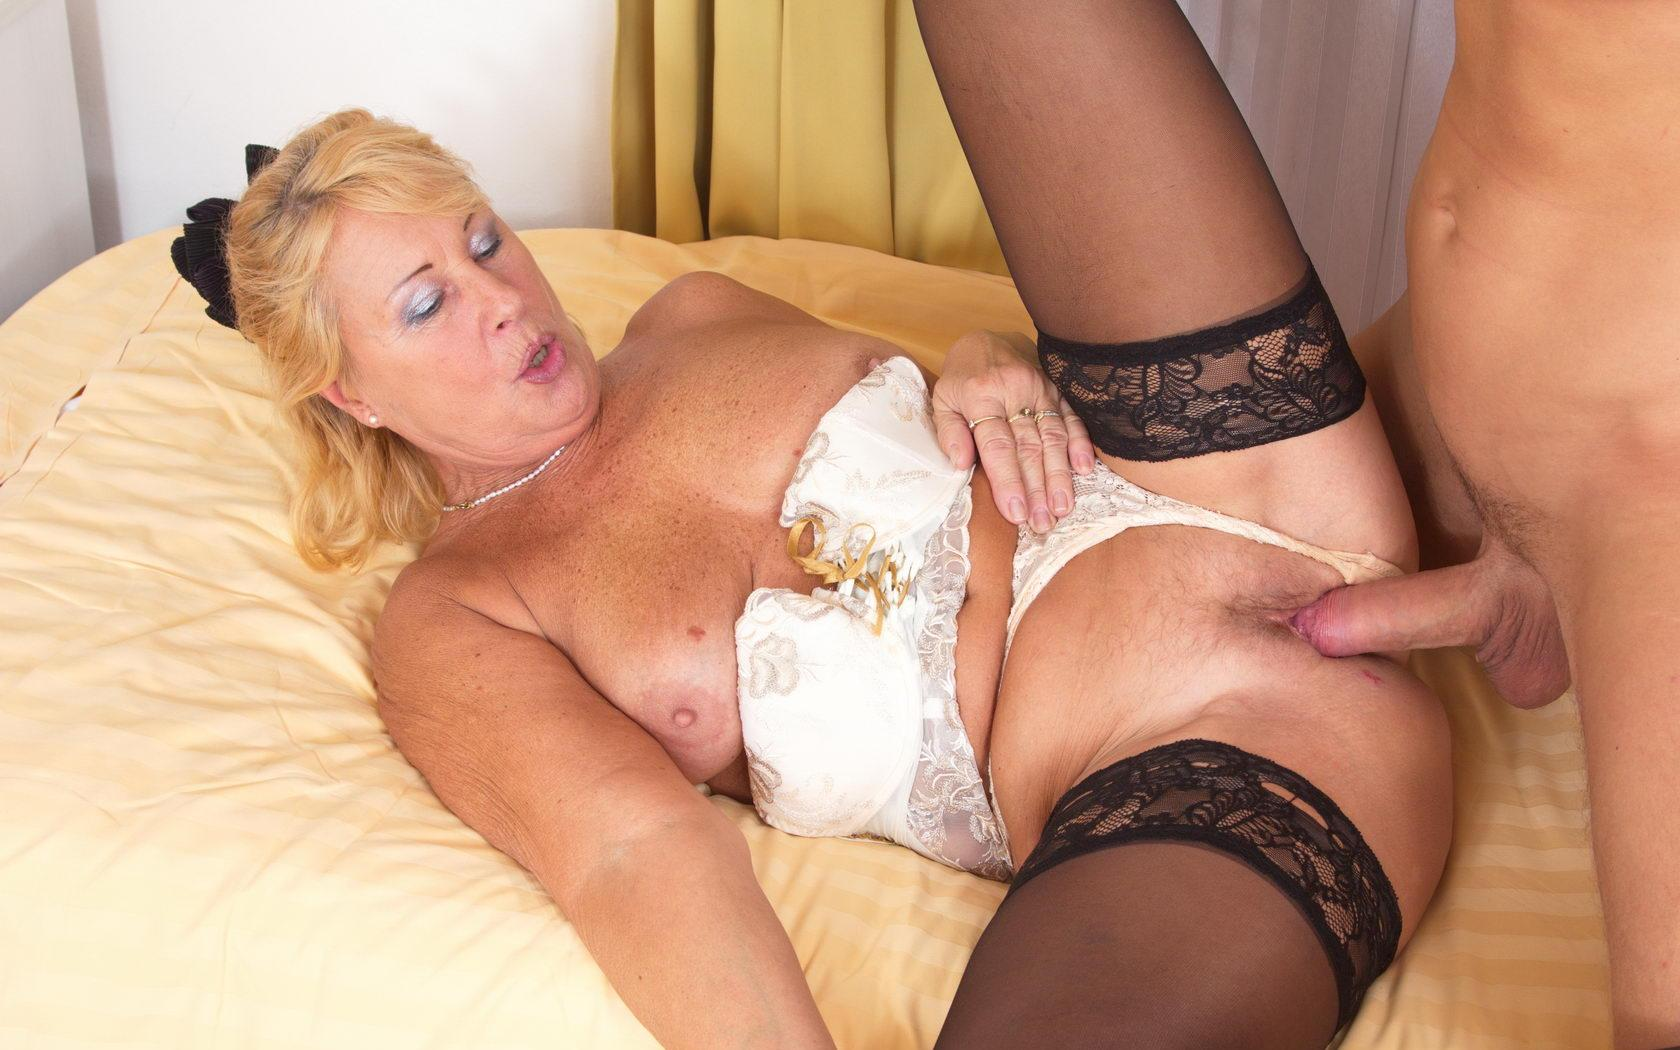 Erika a 69 old aged FUCKED GRANDMOTHER feells a hard young penis in her old hole